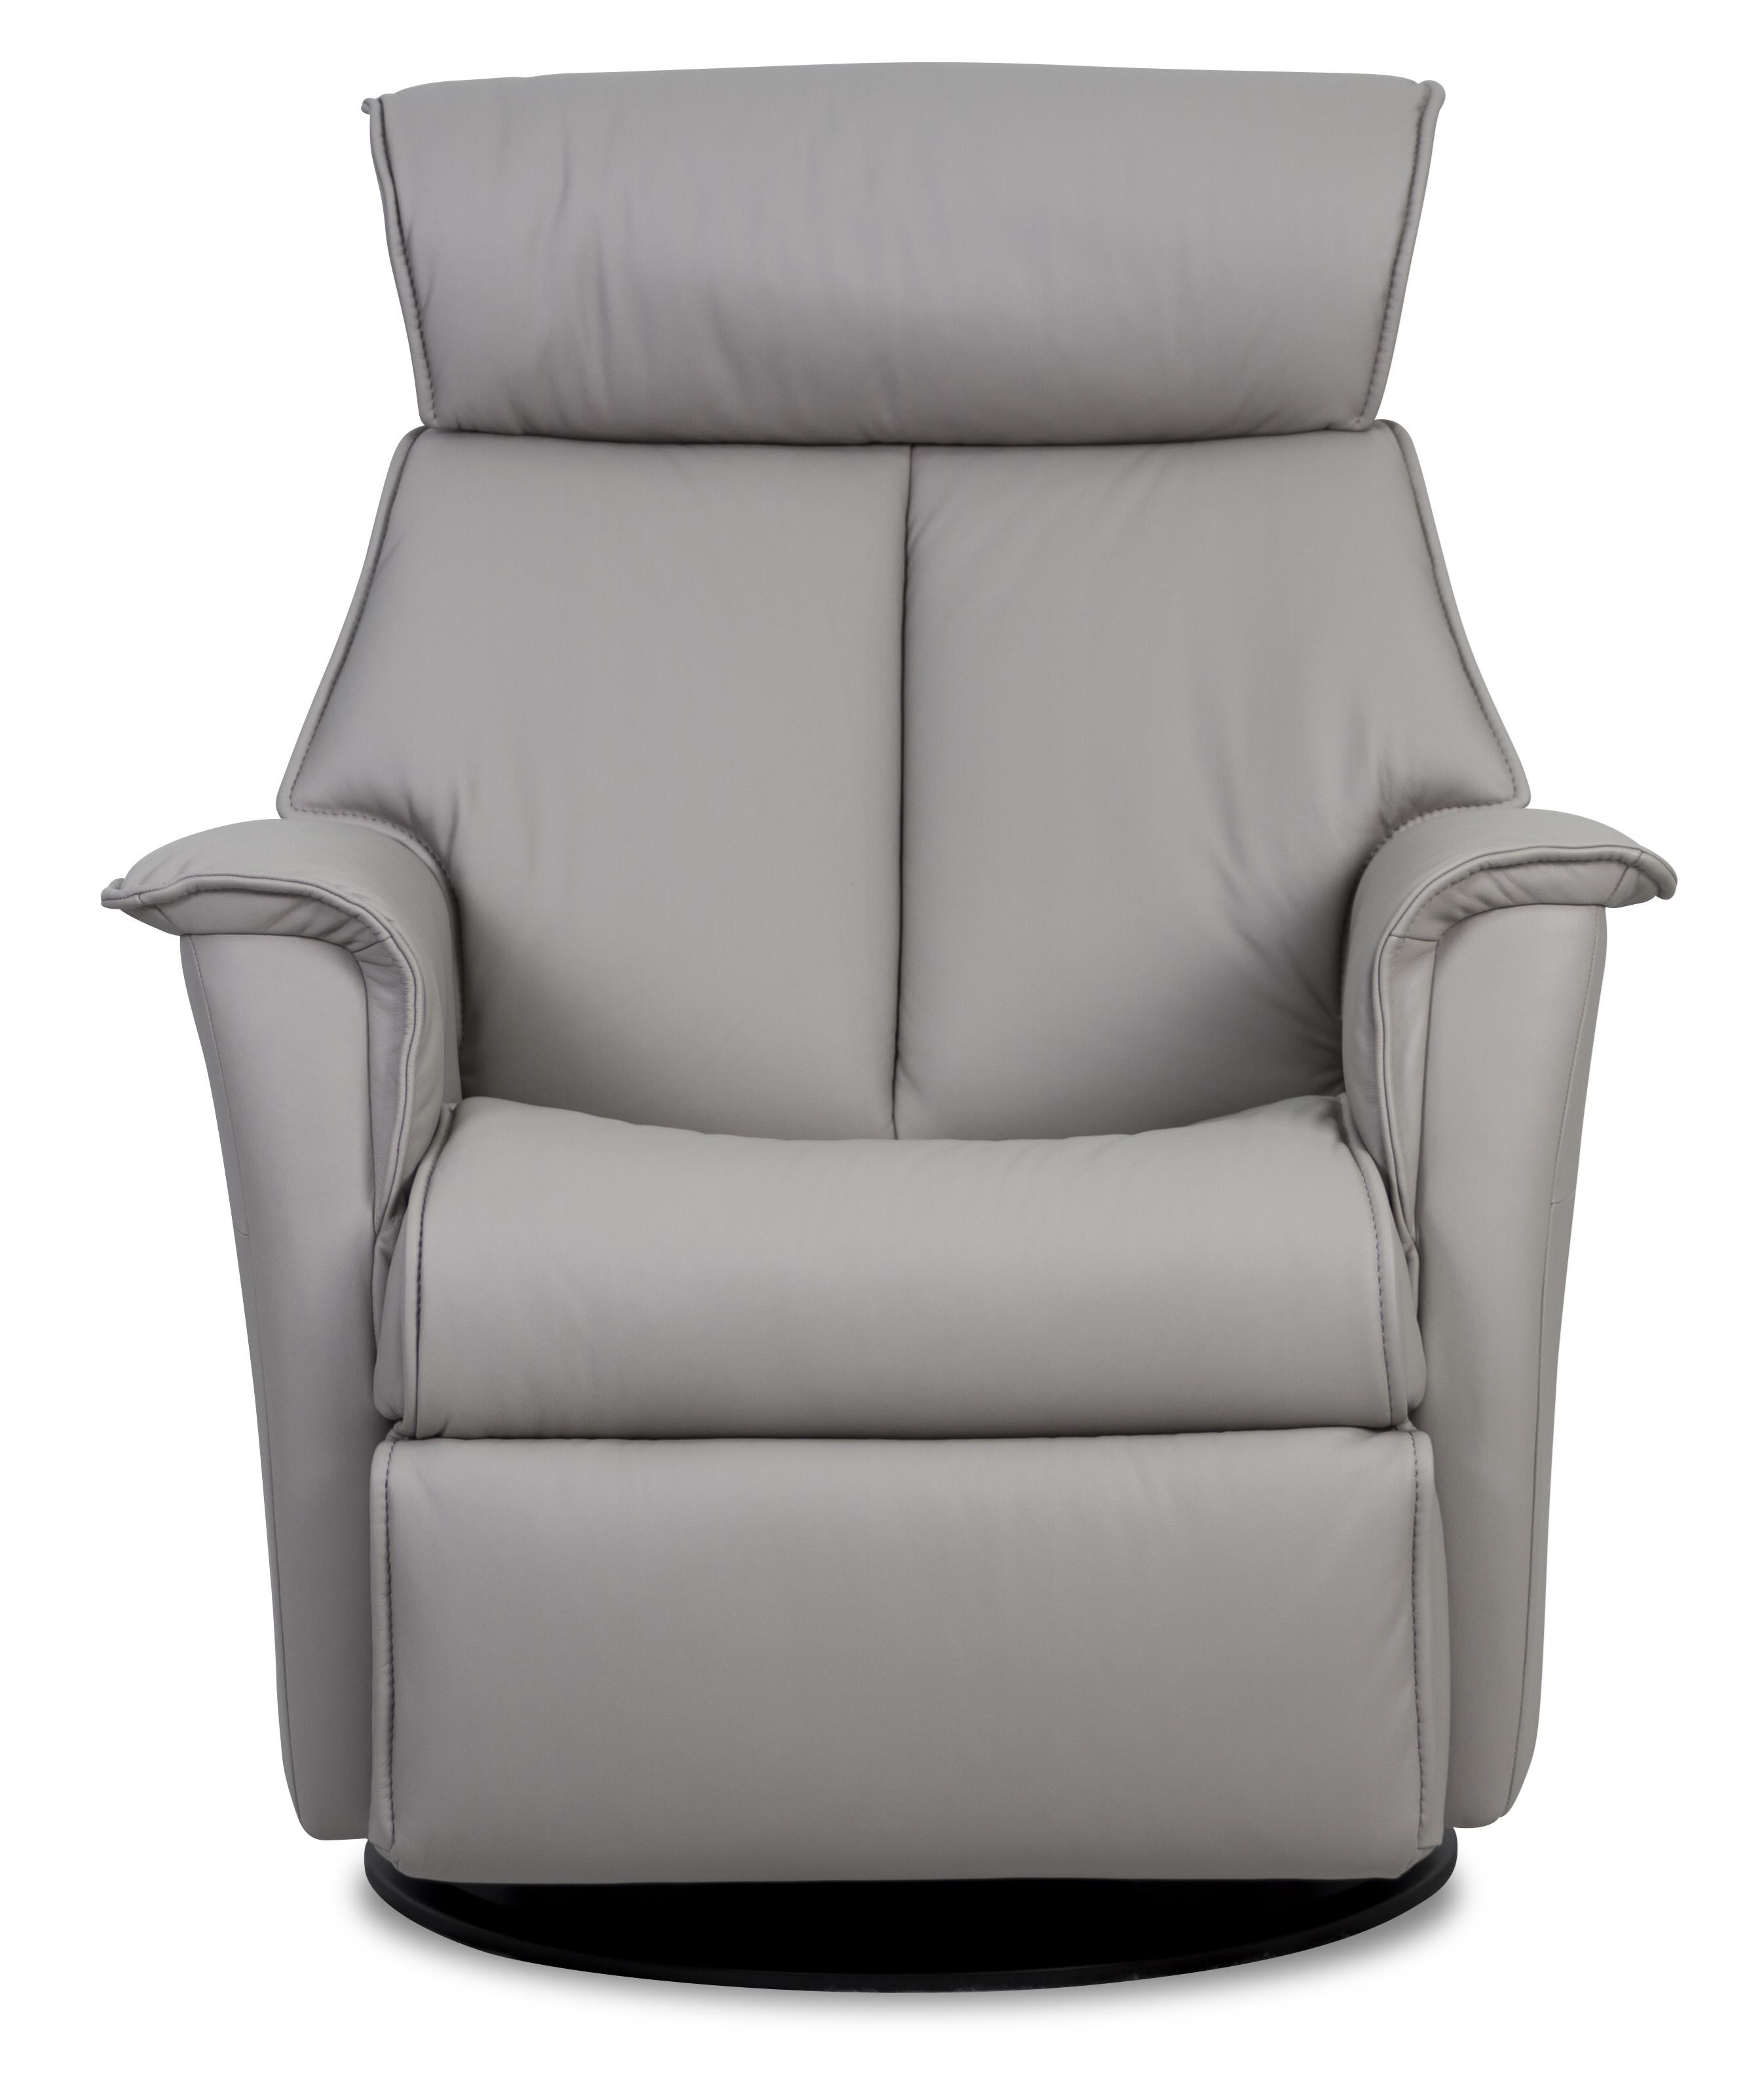 compact recliner chair. IMG Norway BOSS Compact Recliner Chair - Item Number: RG187 M